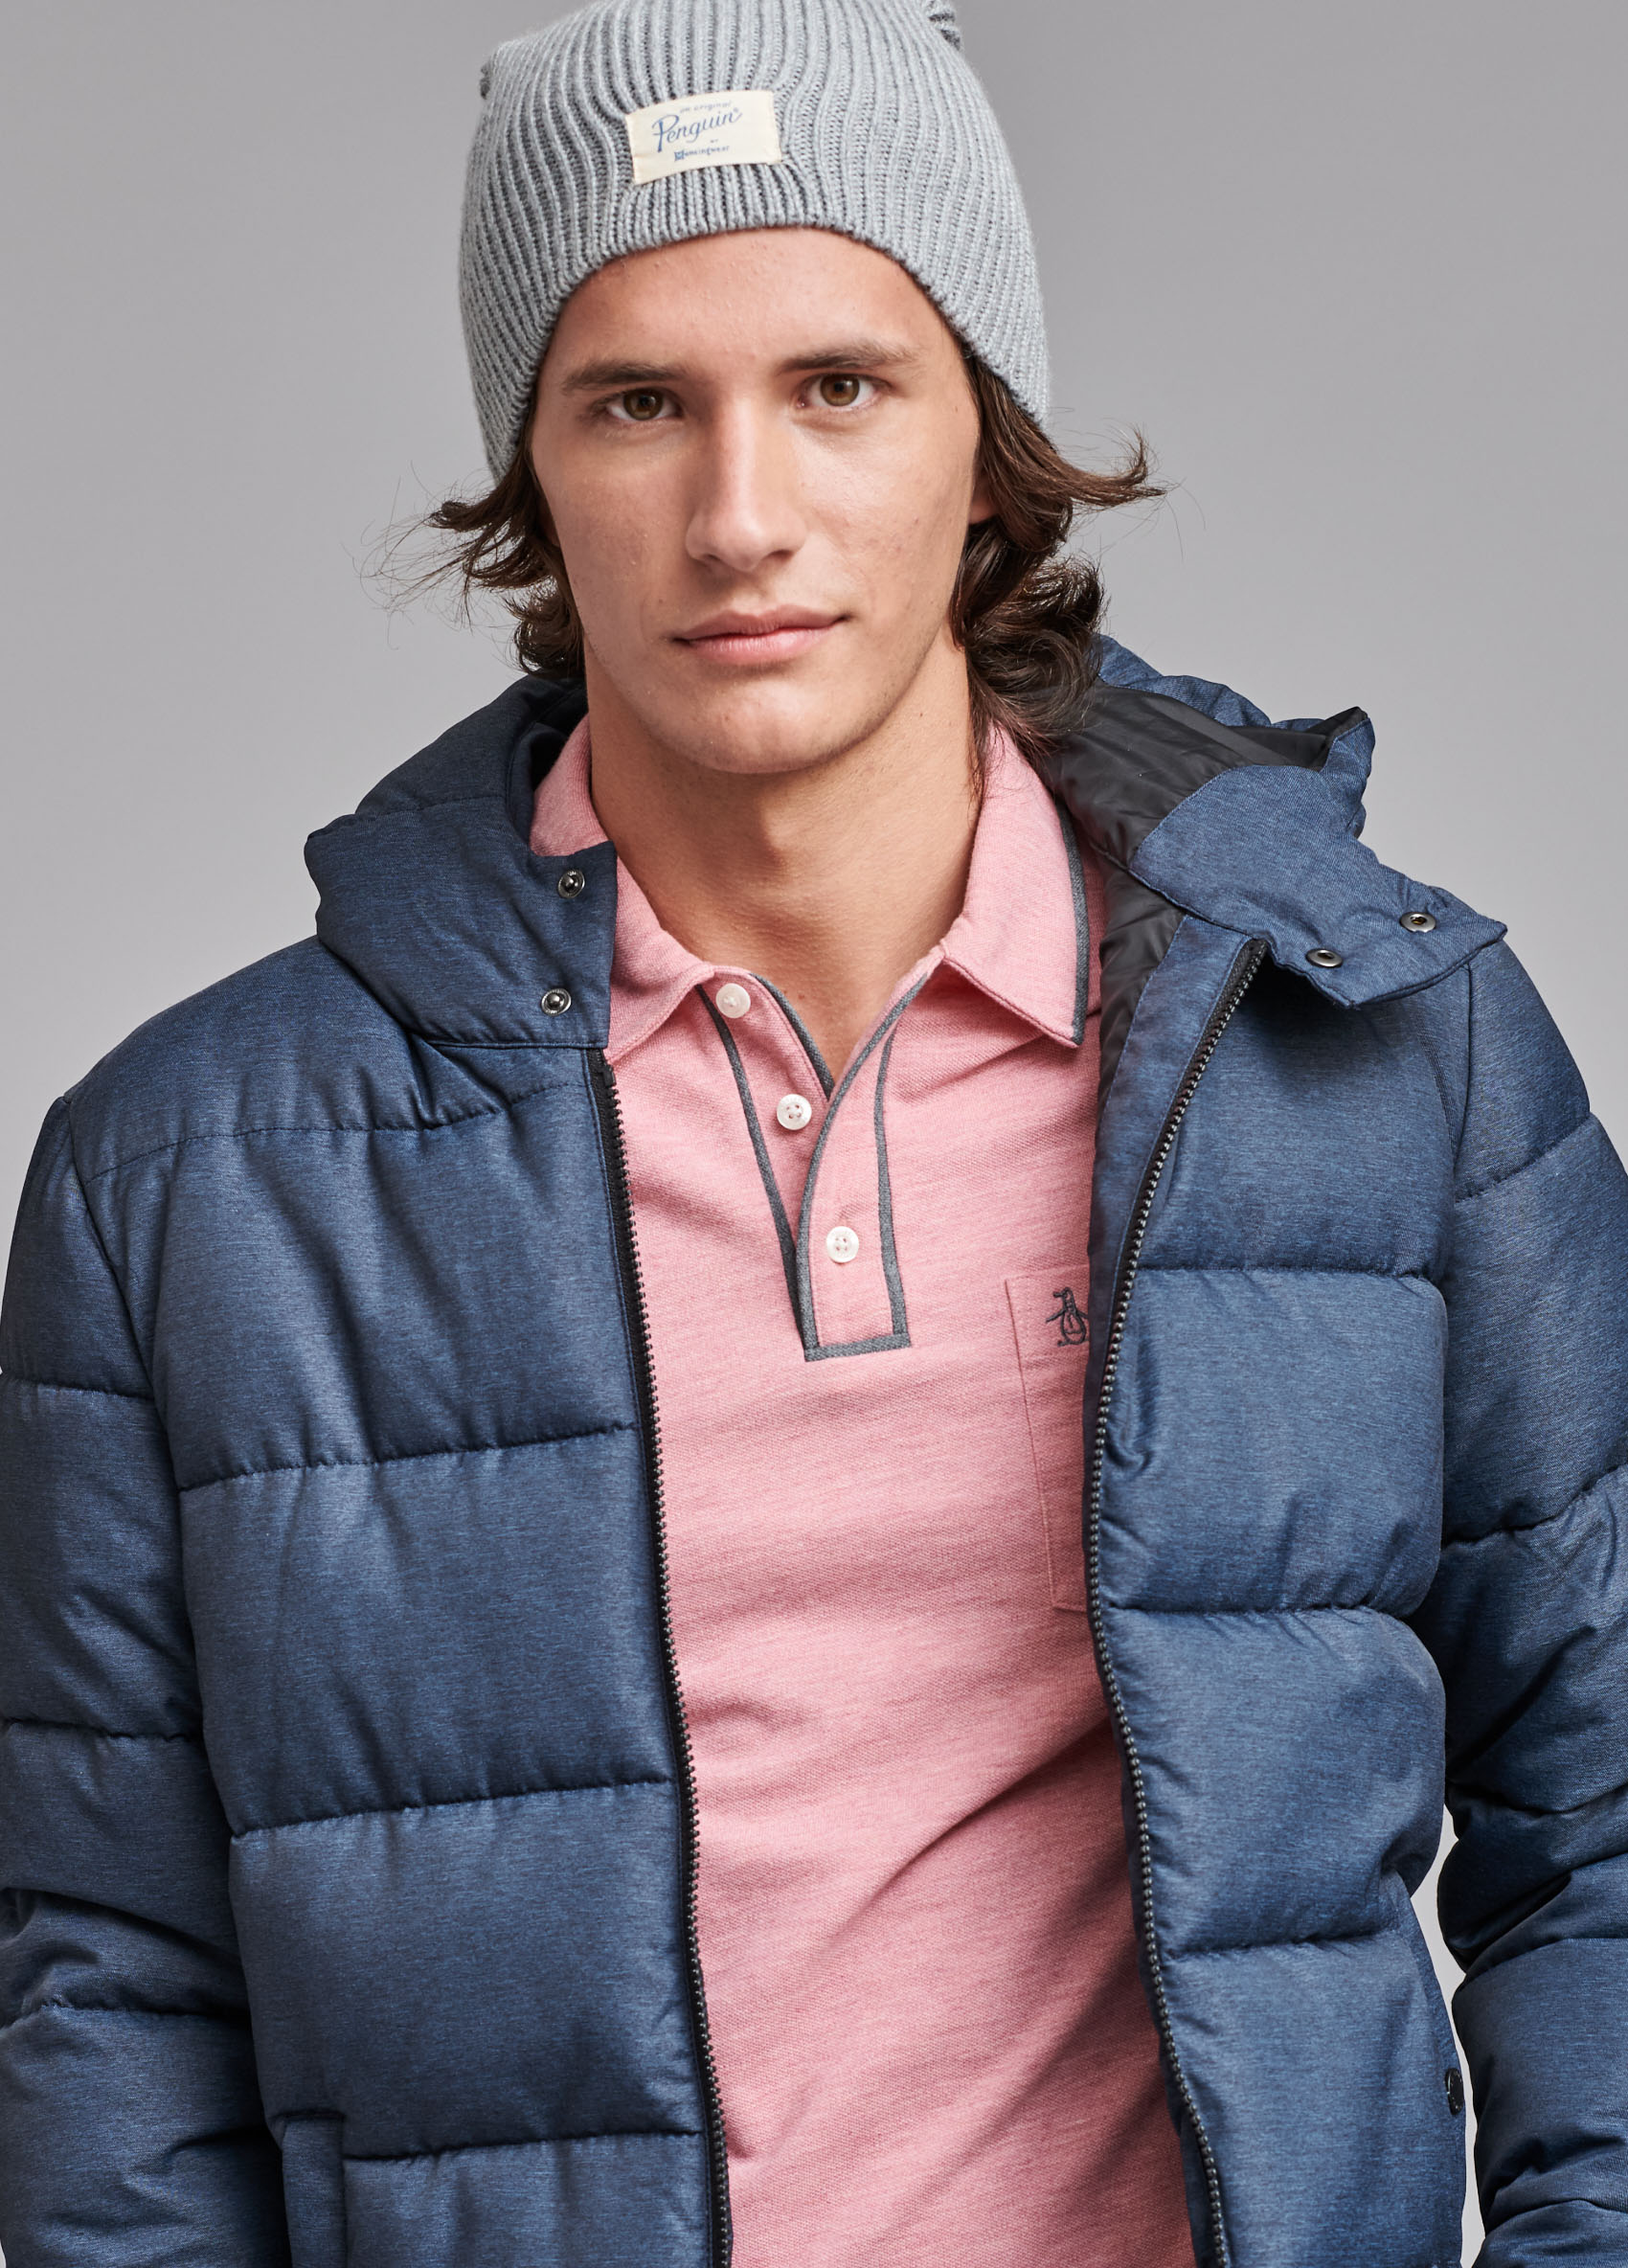 penguin_insulated-melange-puffer-jacket_58-15-2019__picture-8935